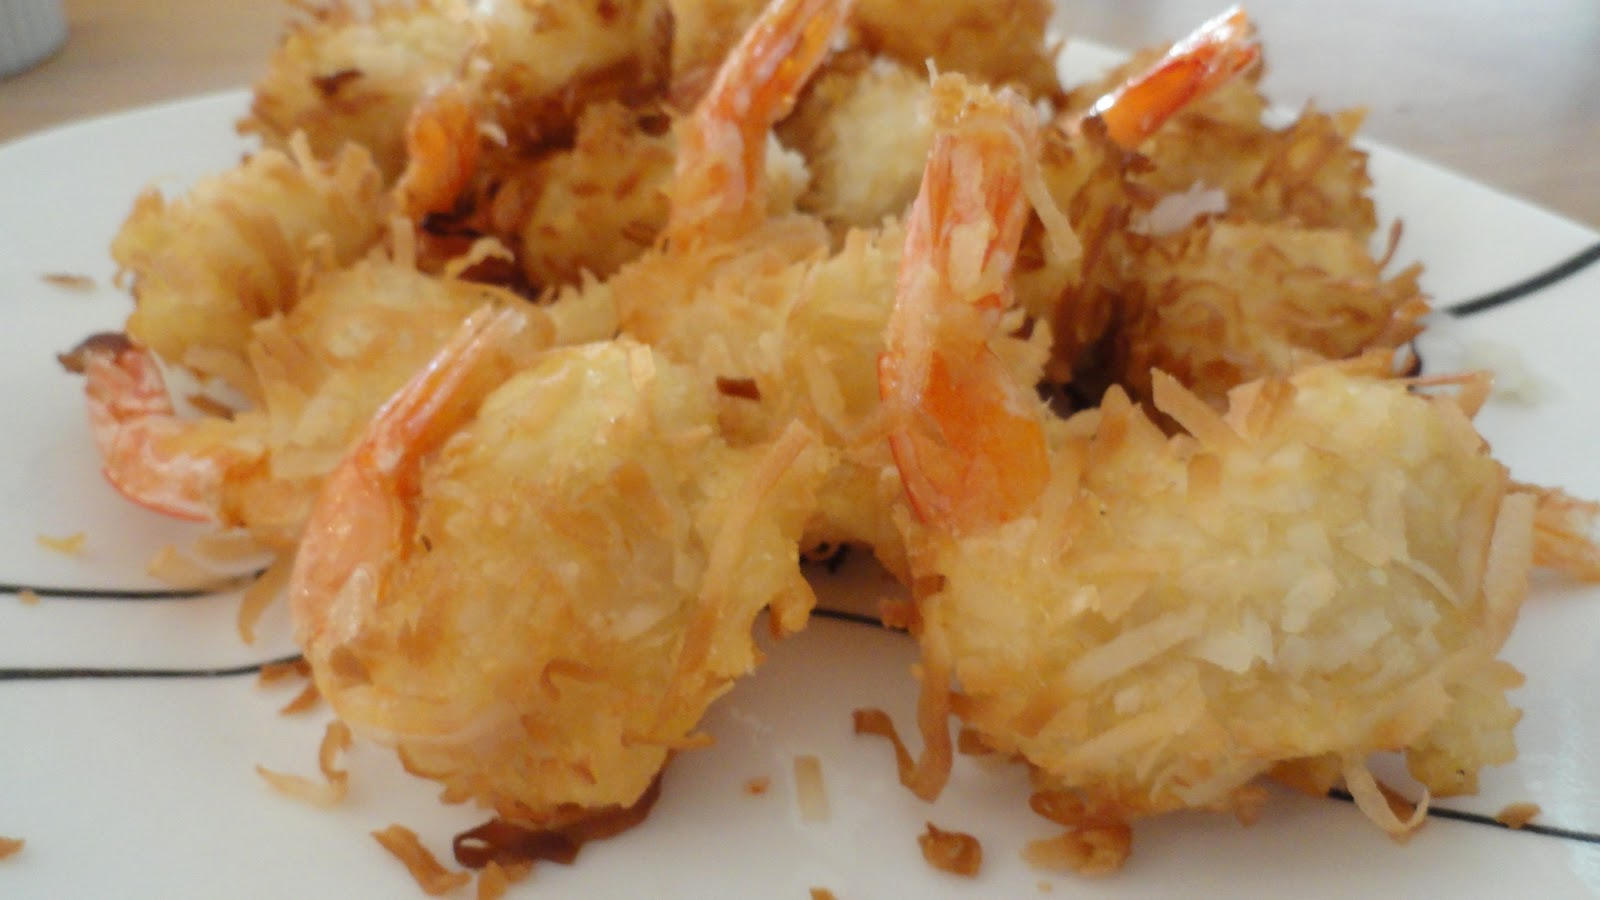 The On-Call Cook: Coconut Shrimp